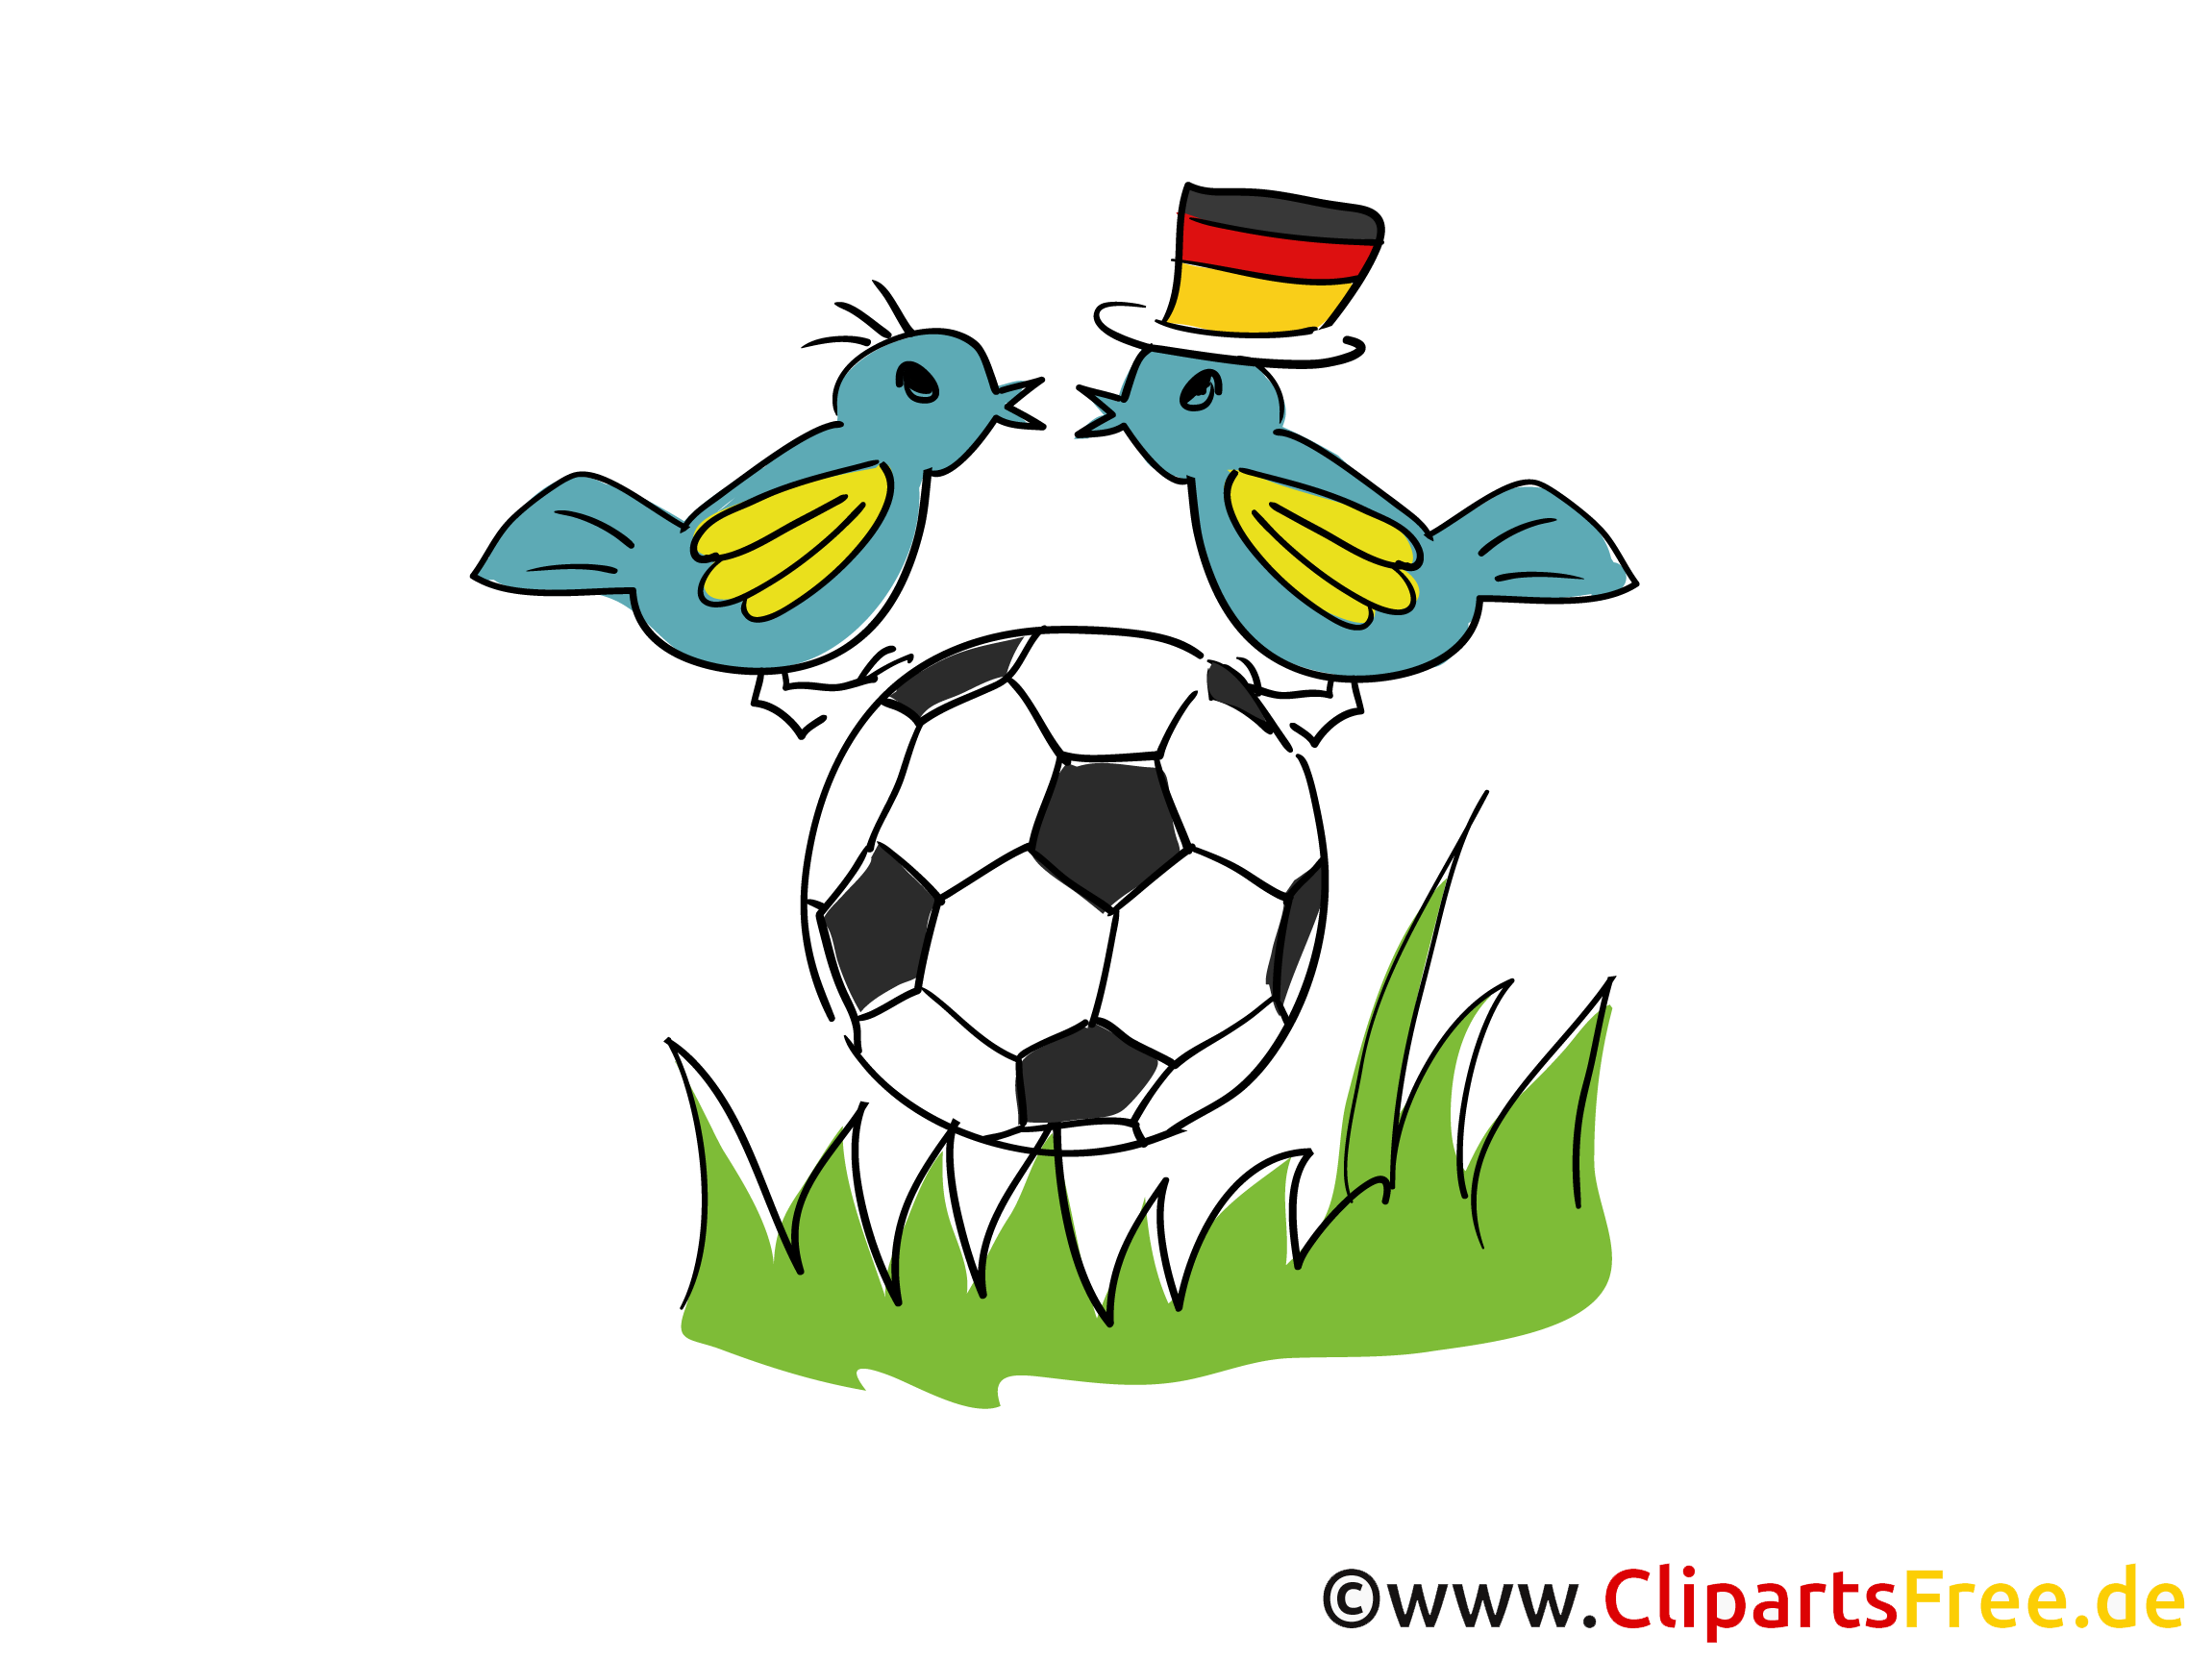 Fussball Grafik, Clipart, Bild, Cartoon